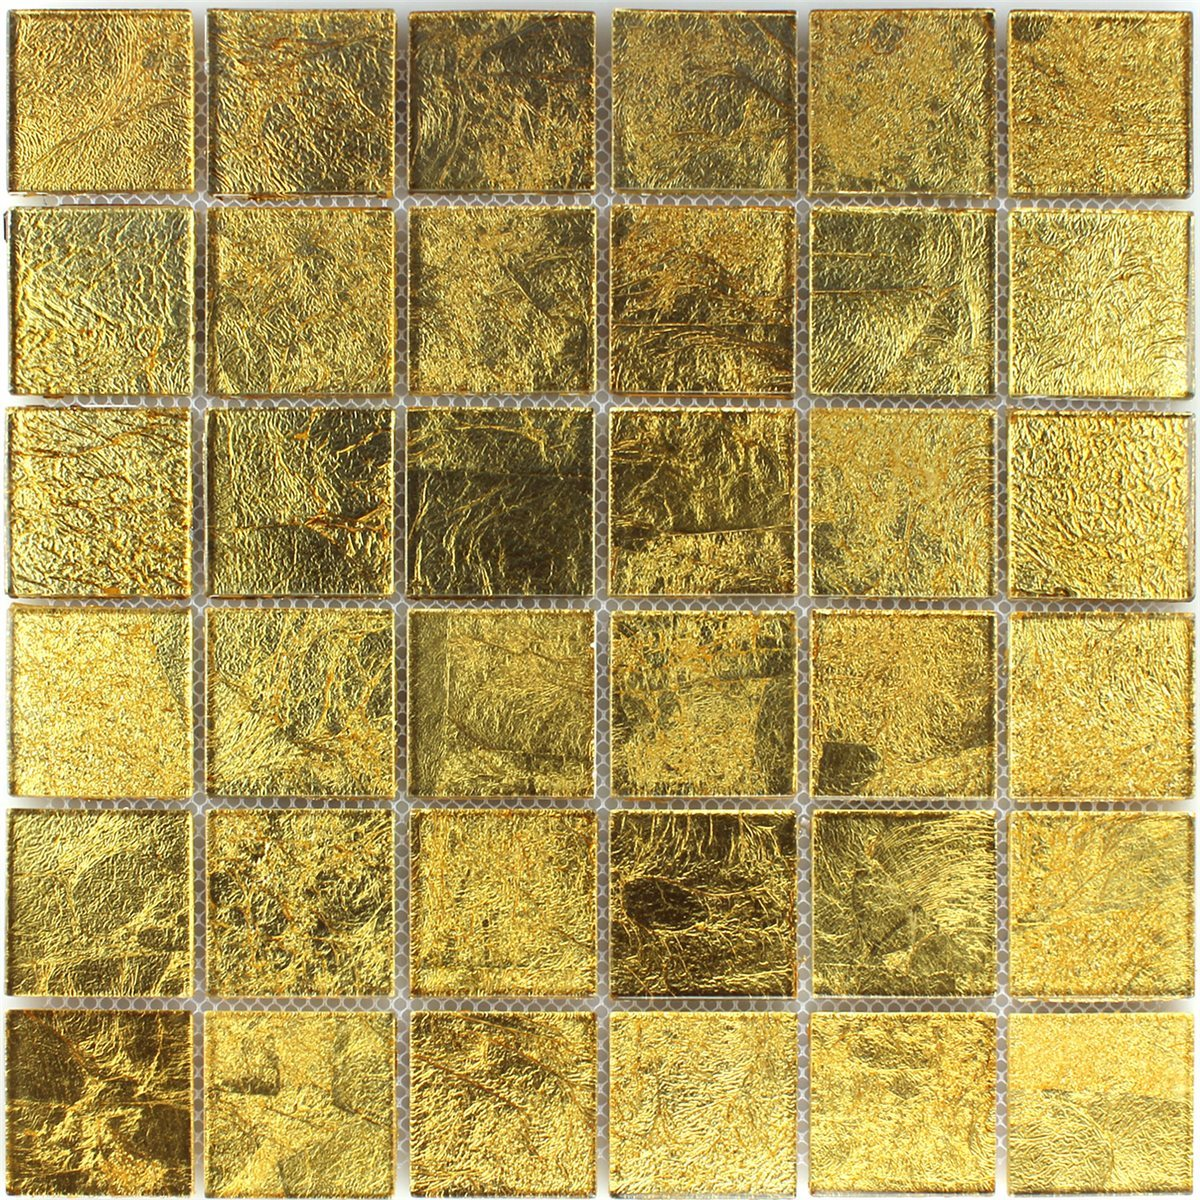 Glass Mosaic Effect Tiles Gold 48x48x4mm | www.mosafil.co.uk